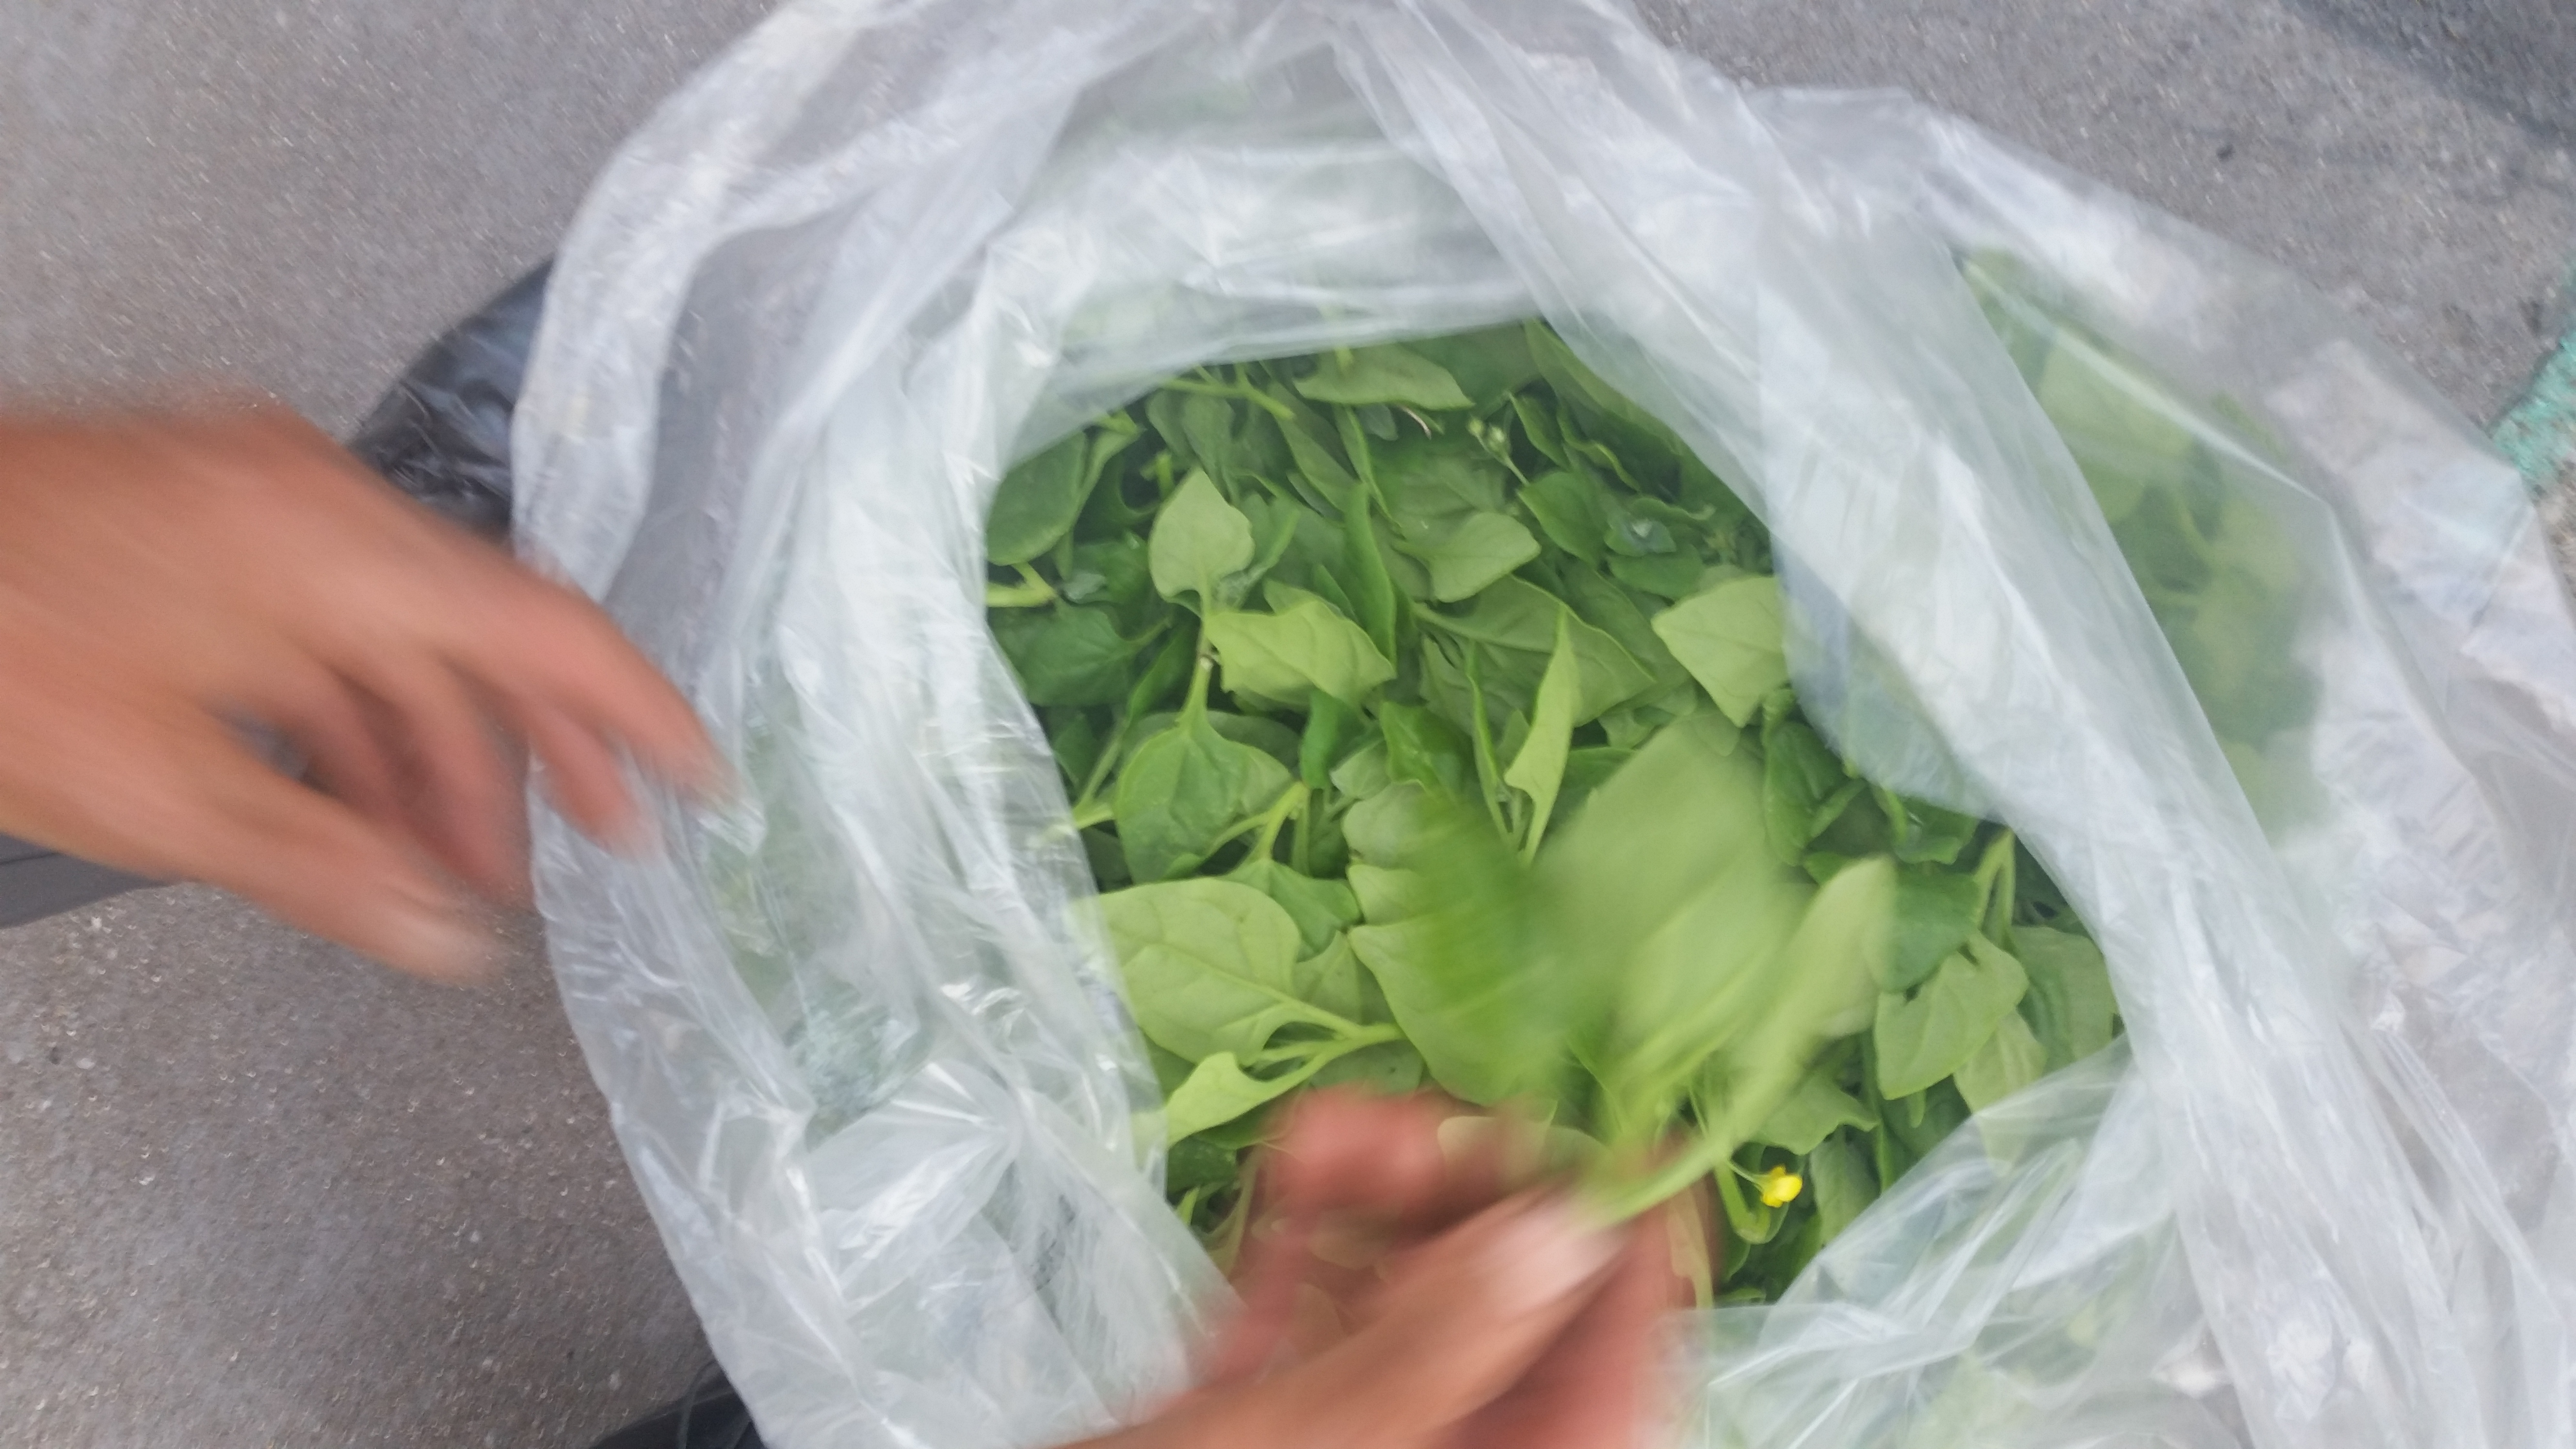 New Zealand Spinach delivery from Erik's Organics, LLC